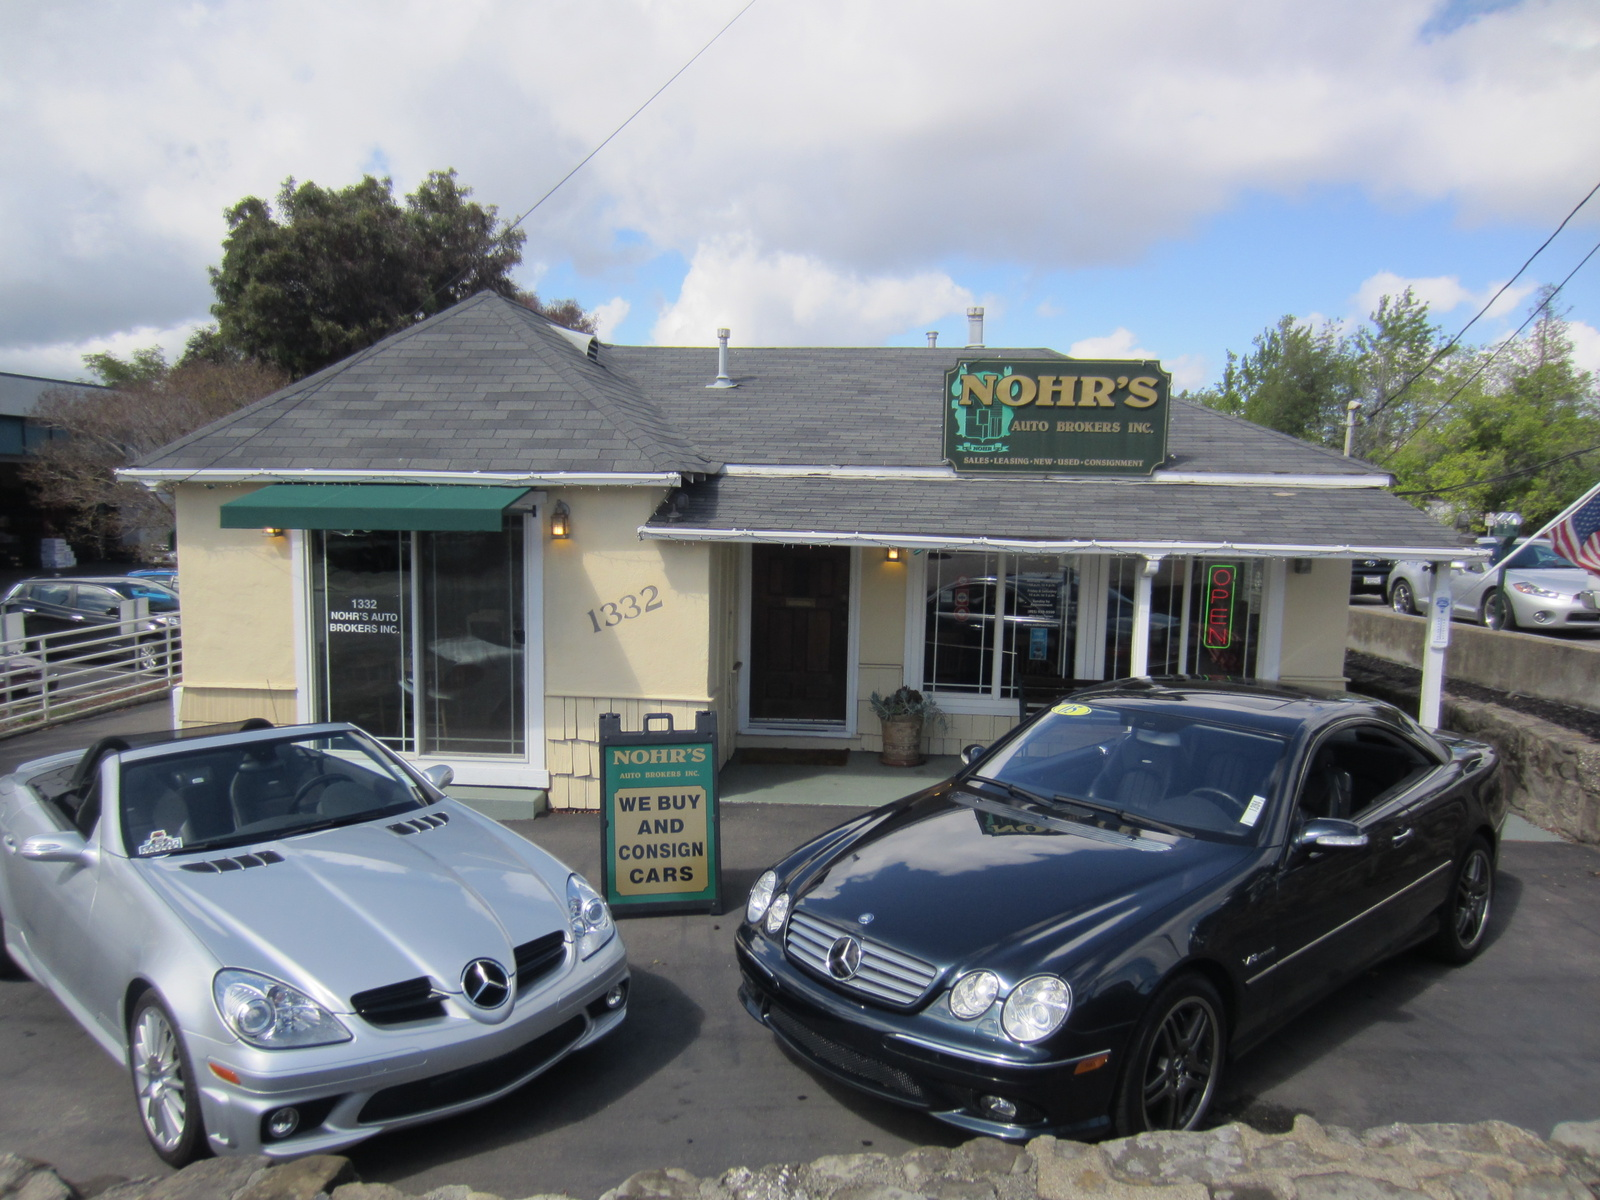 Walnut Creek Jeep >> Nohr's Auto Brokers - Walnut Creek, CA: Read Consumer reviews, Browse Used and New Cars for Sale